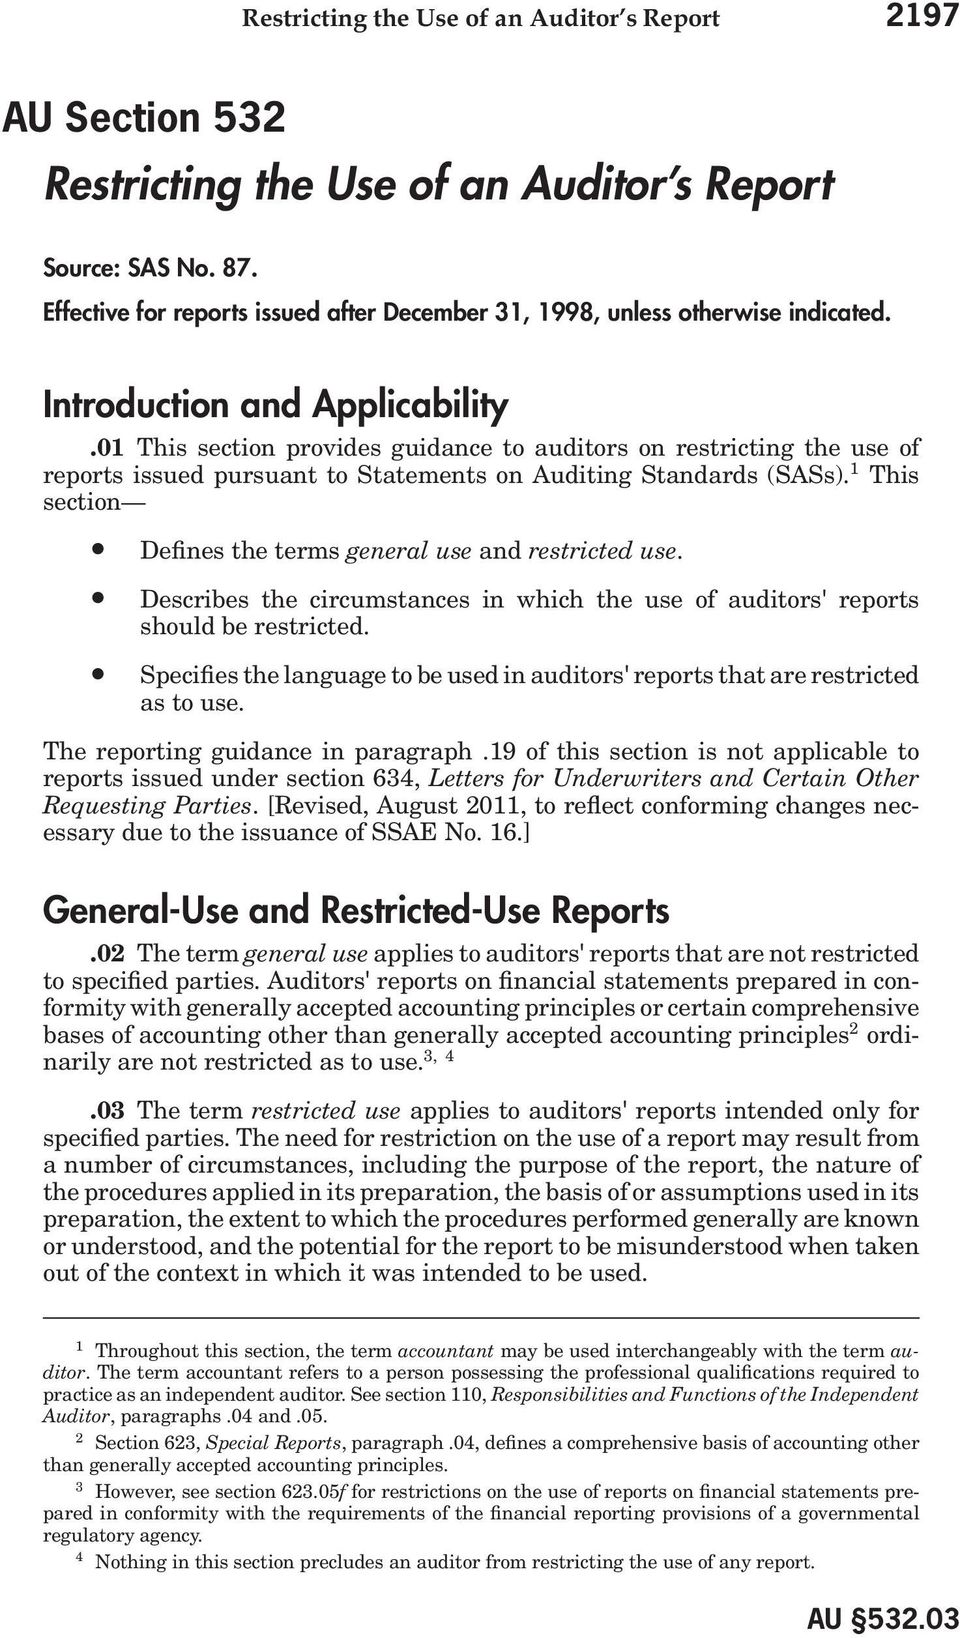 01 This section provides guidance to auditors on restricting the use of reports issued pursuant to Statements on Auditing Standards (SASs).